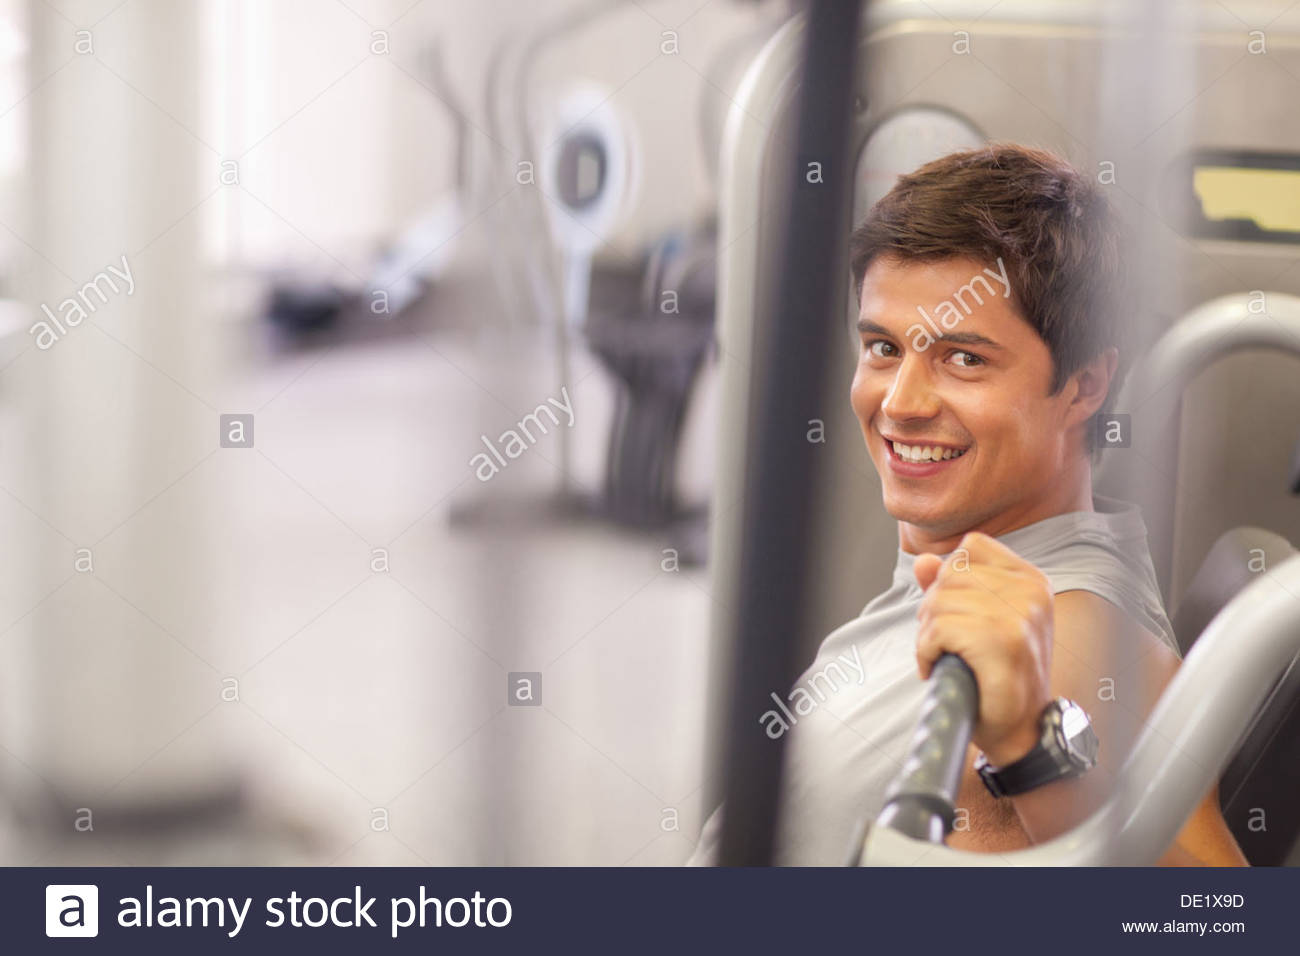 Man working out in gym - Stock Image